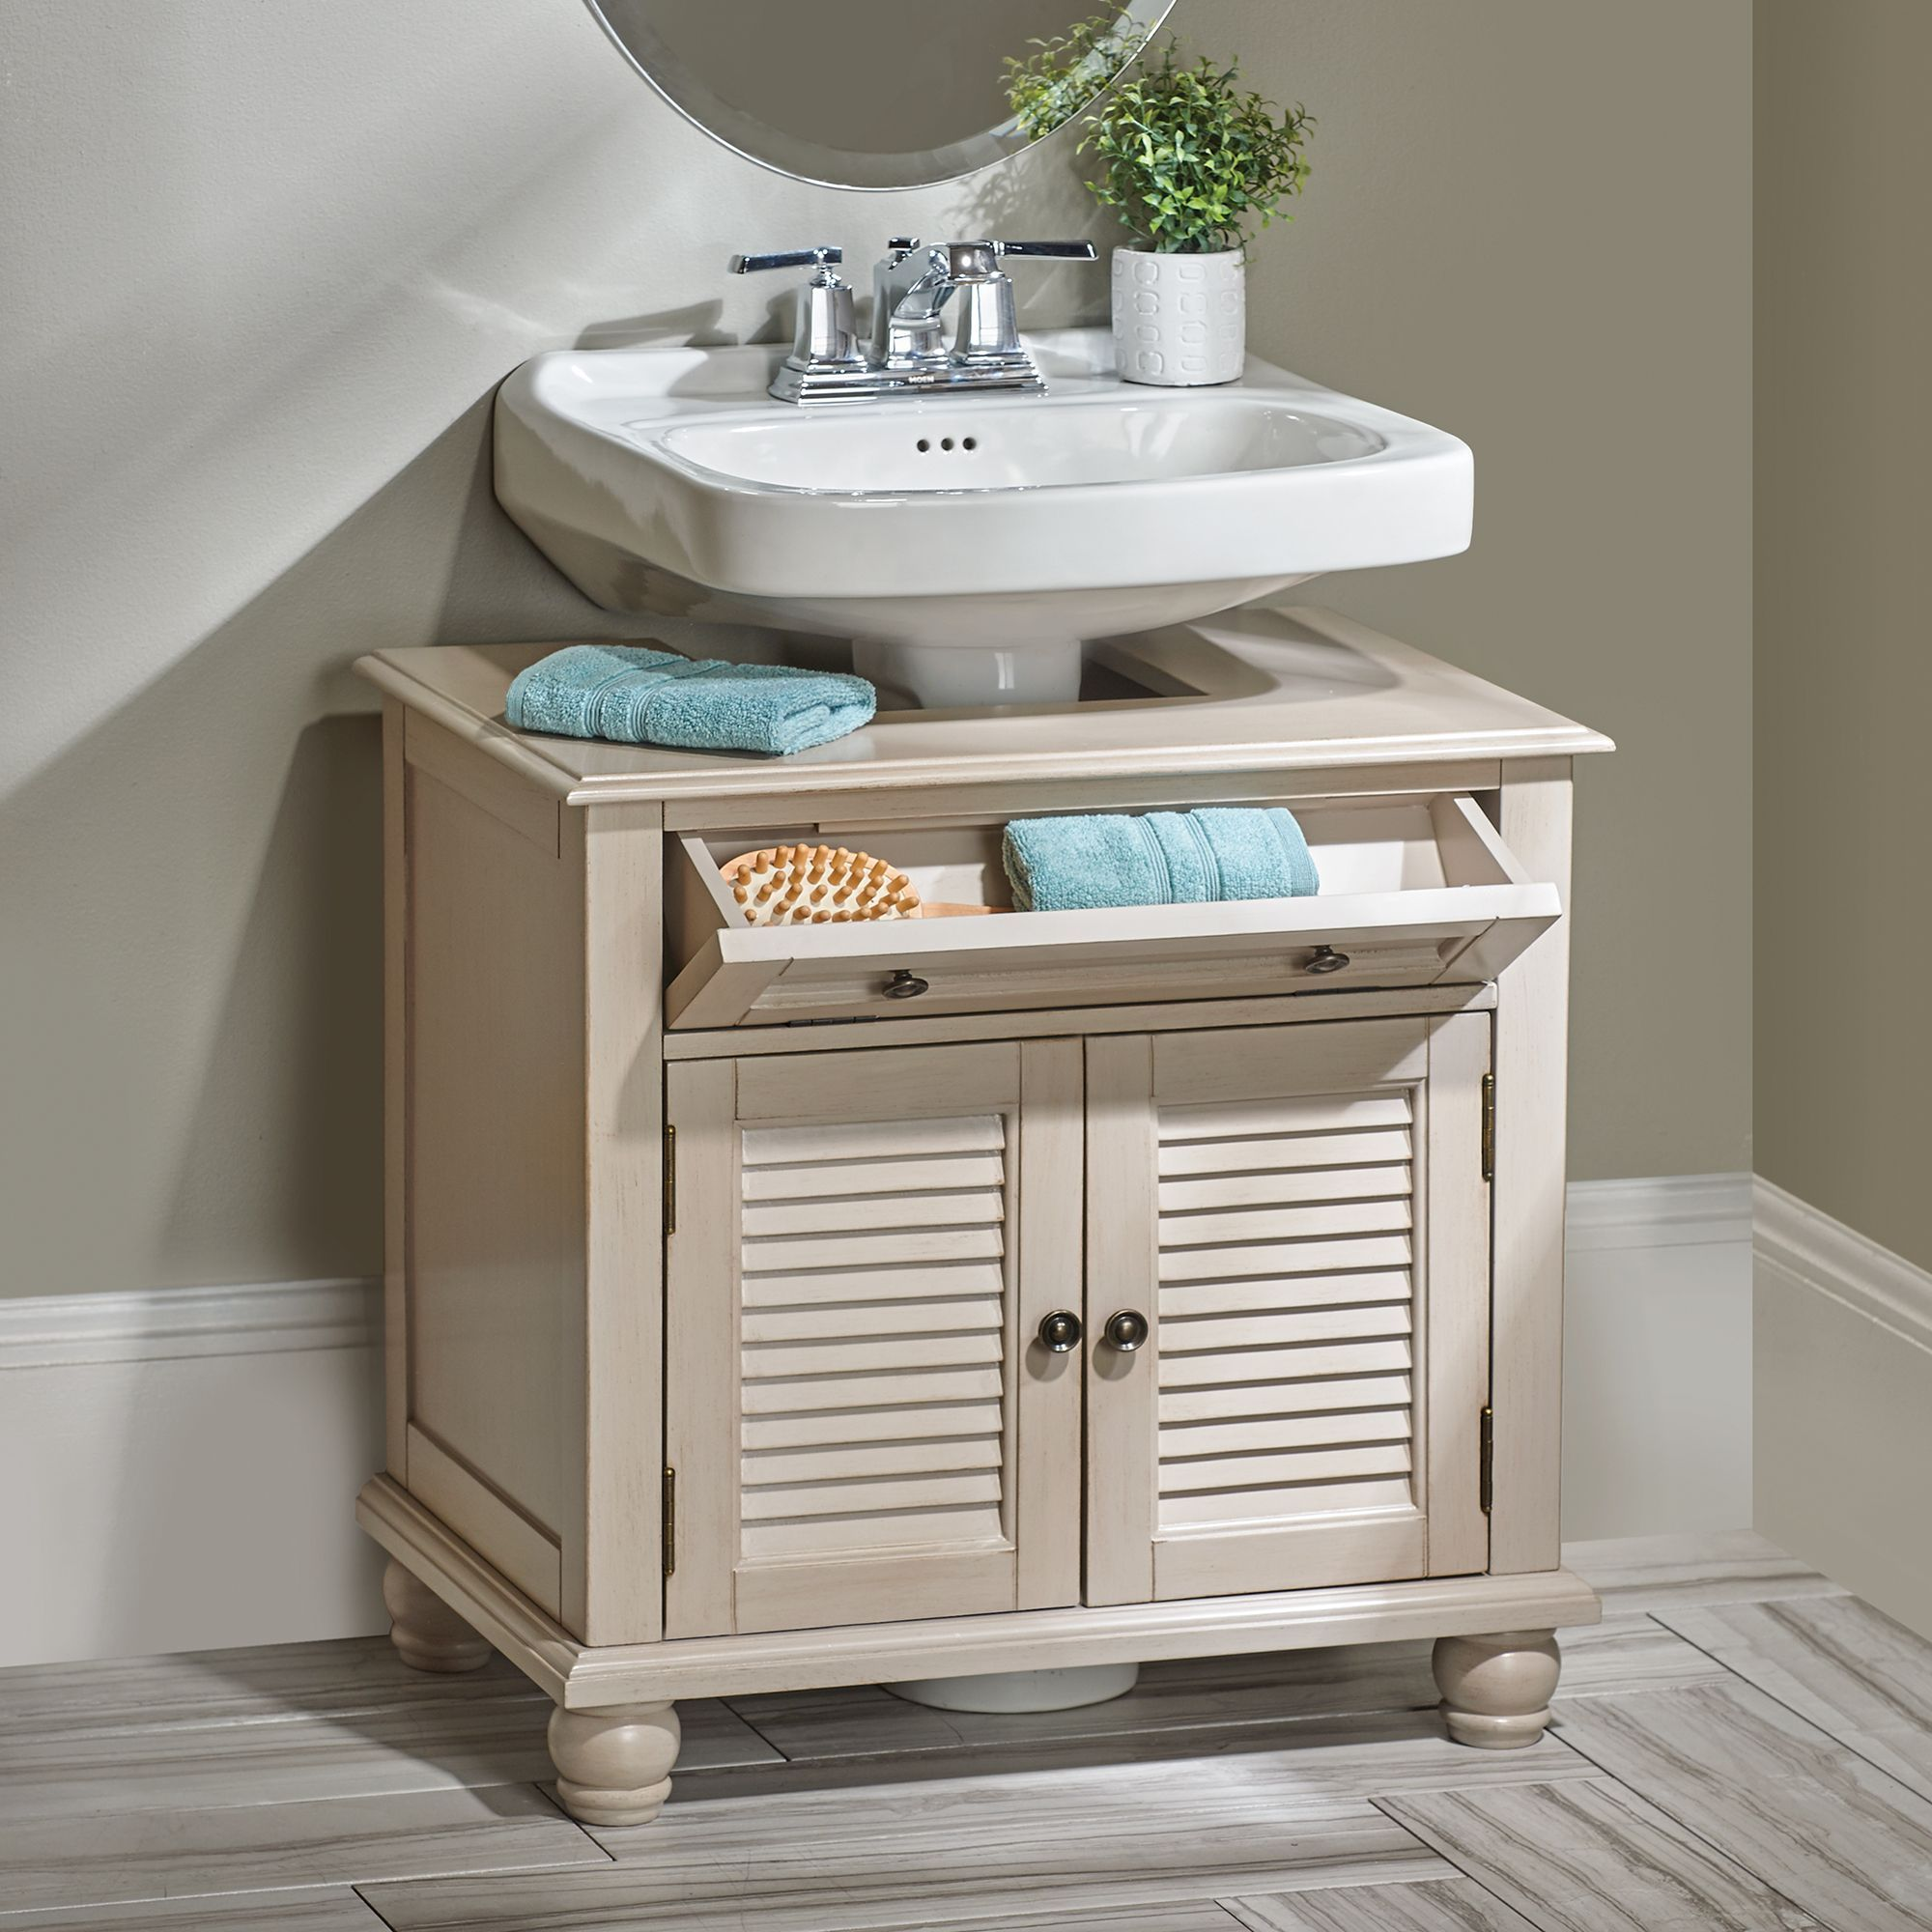 cabinet ideas of skinny comfy then pe full vanity pedestal p bathroom on nice picture shelves inset splendi bathrooms size small for along storage towel with withas rack sink